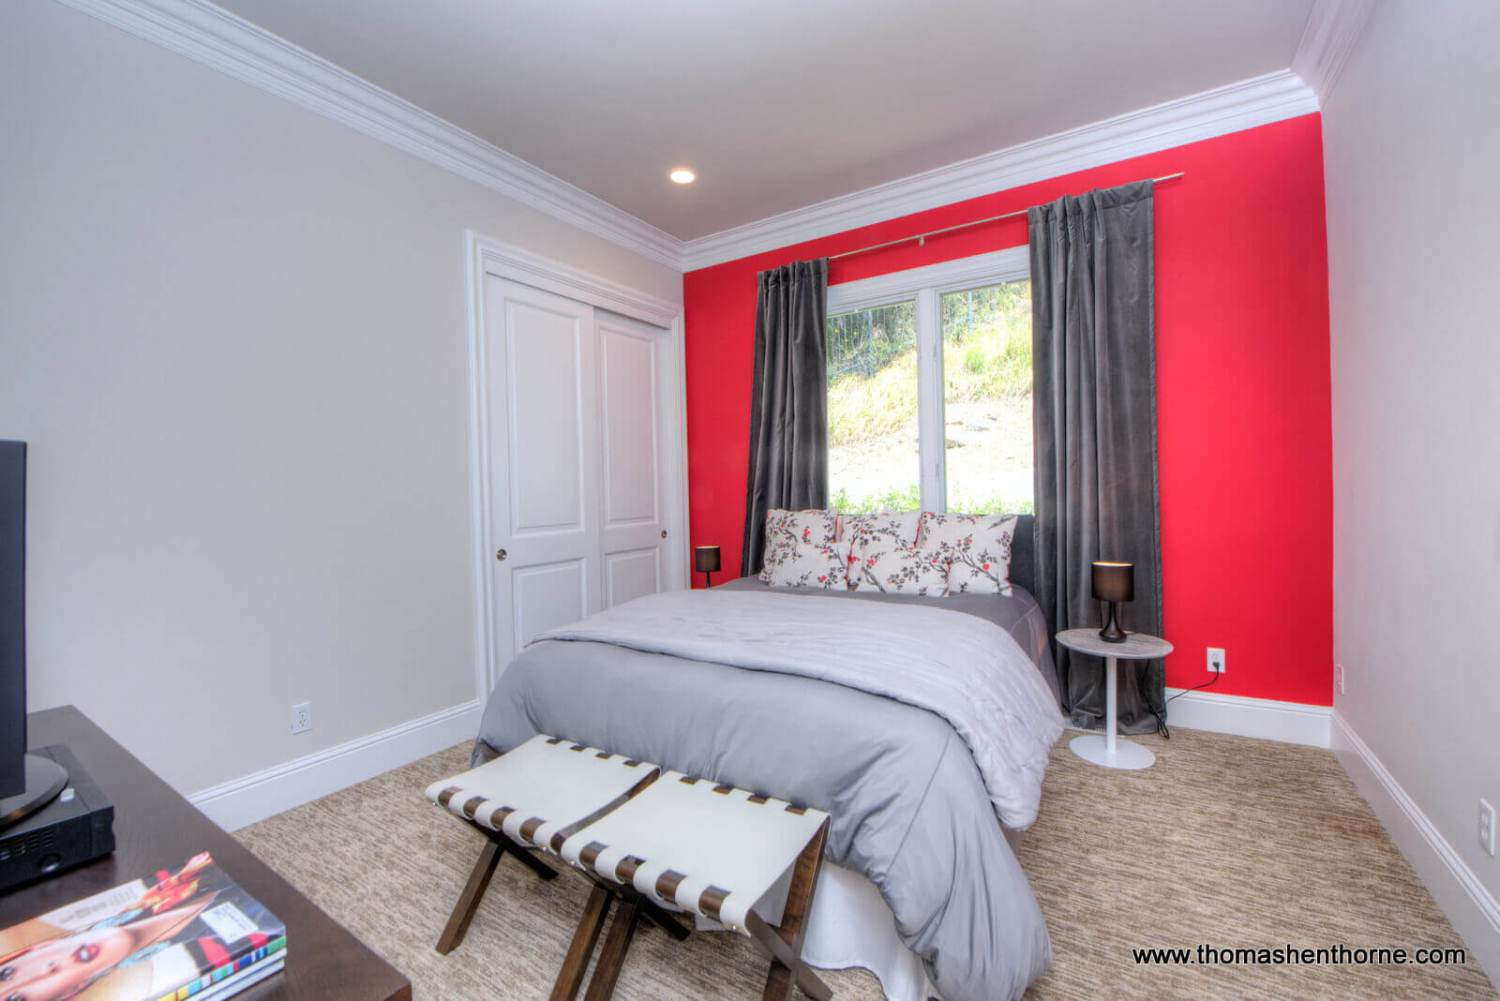 Bedroom with red wall